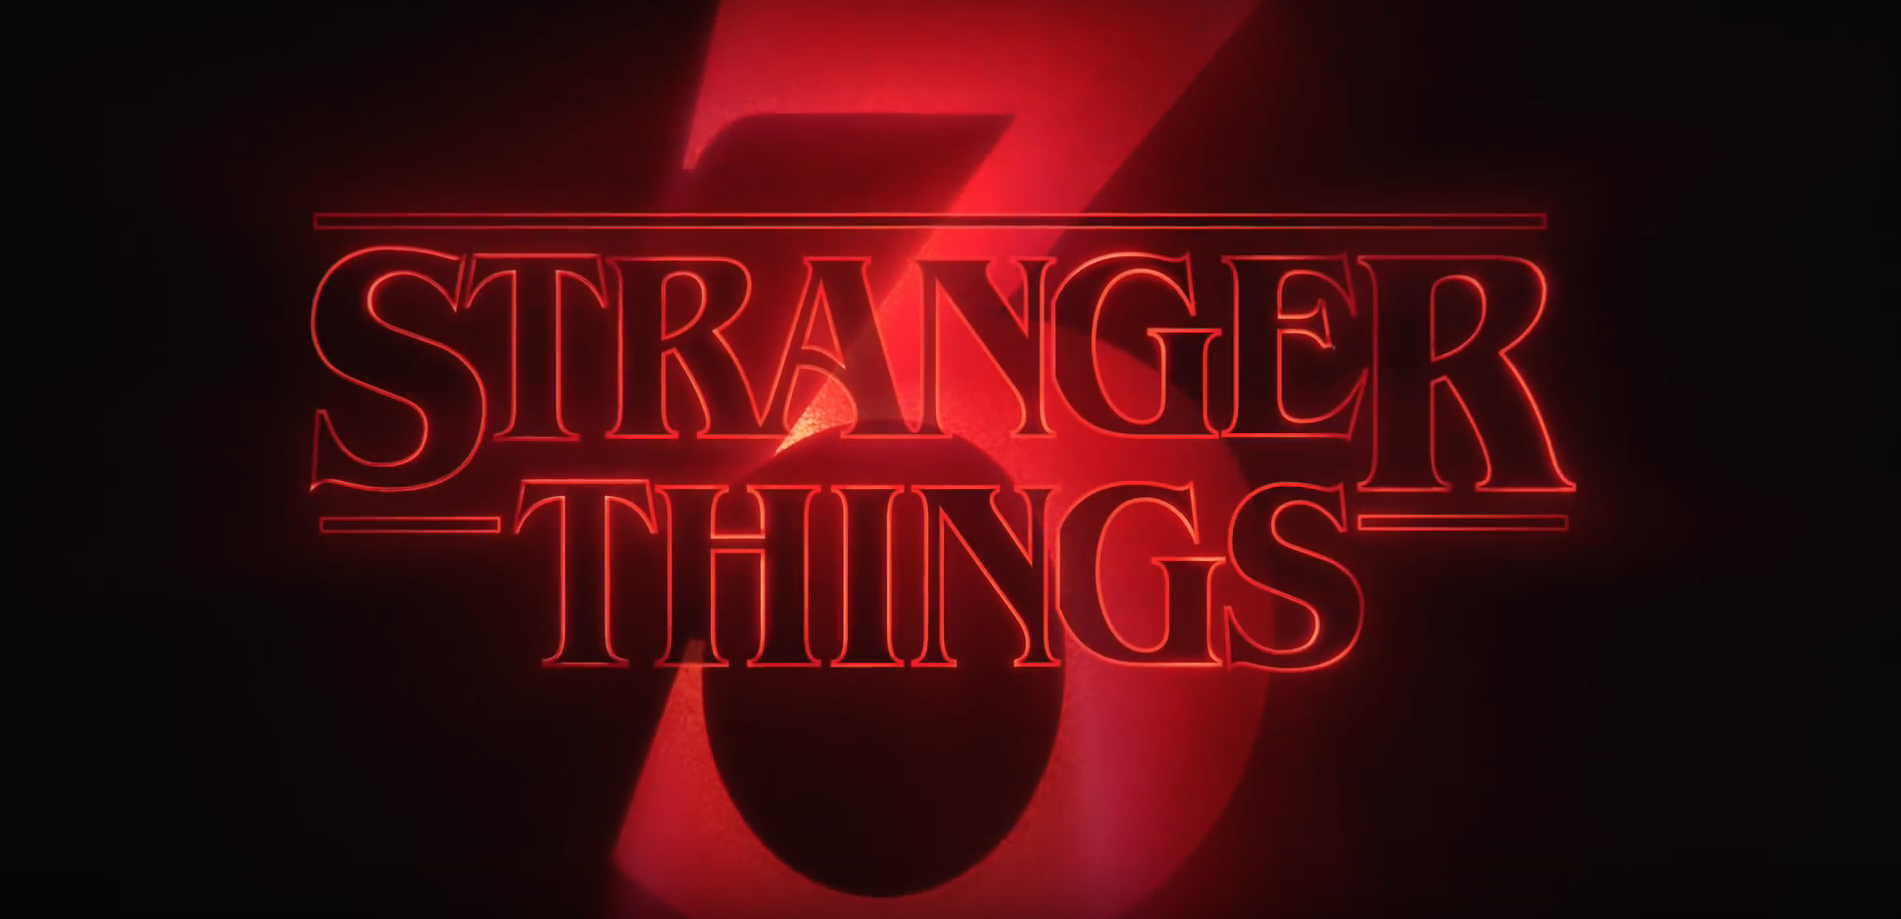 stranger things 3 logo 10 free Cliparts | Download images ...